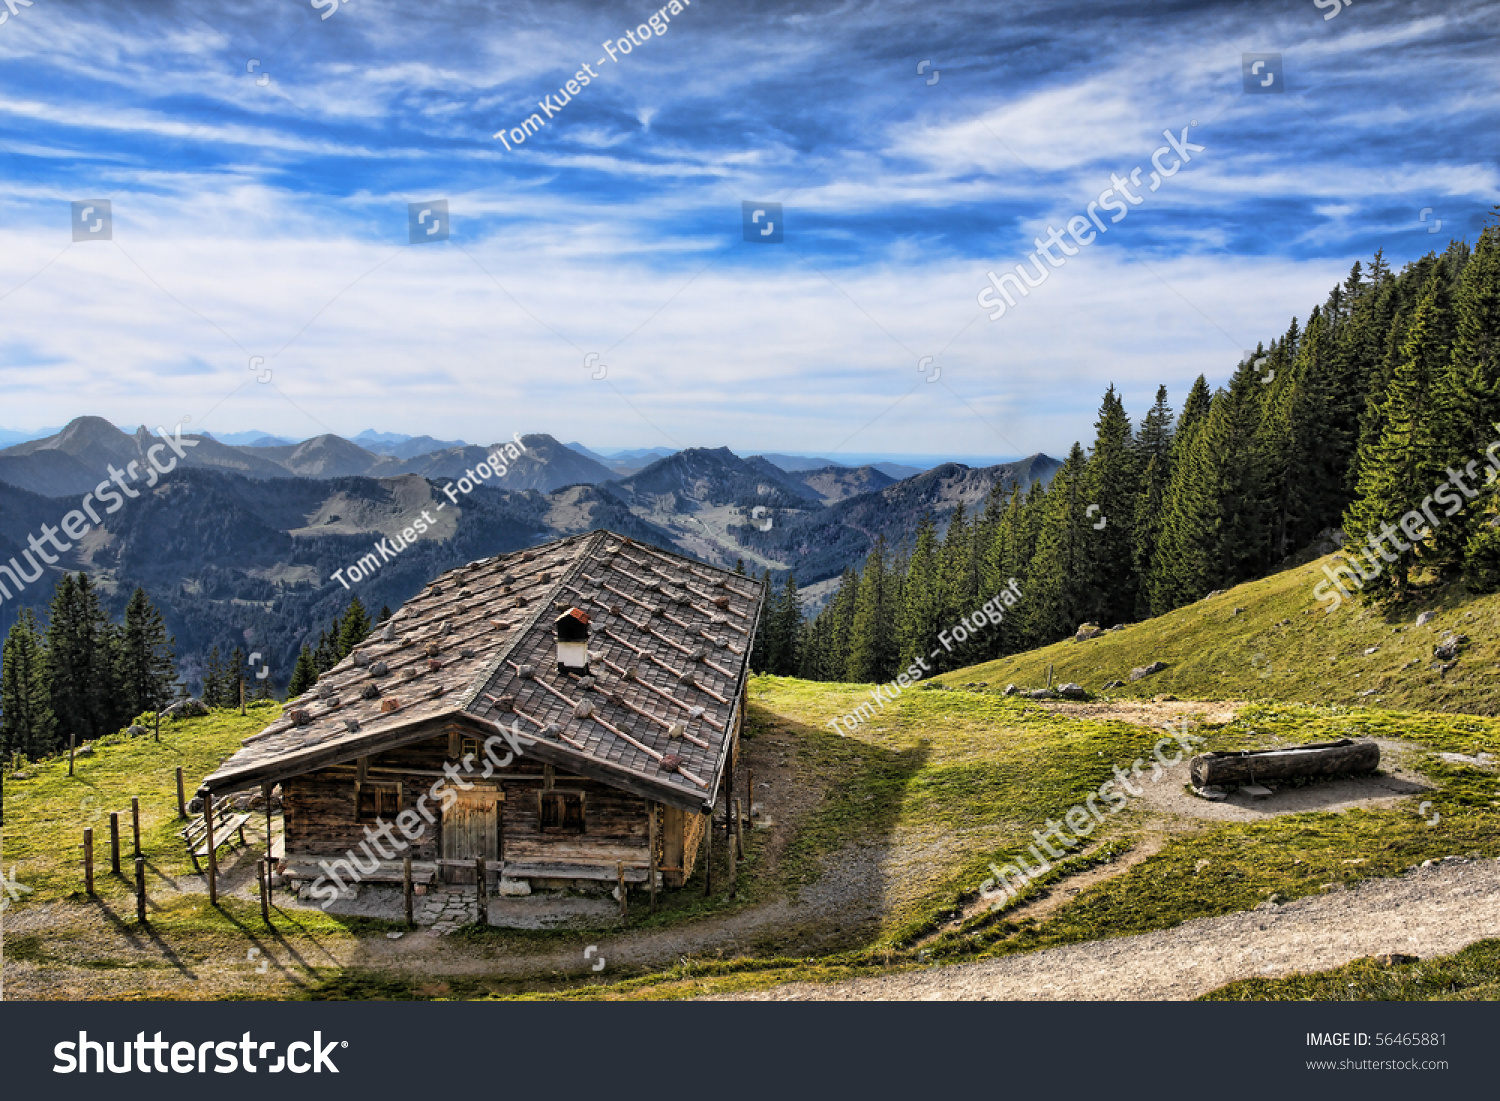 Cottage in the mountains stock photo 56465881 shutterstock for Cottage in the mountains